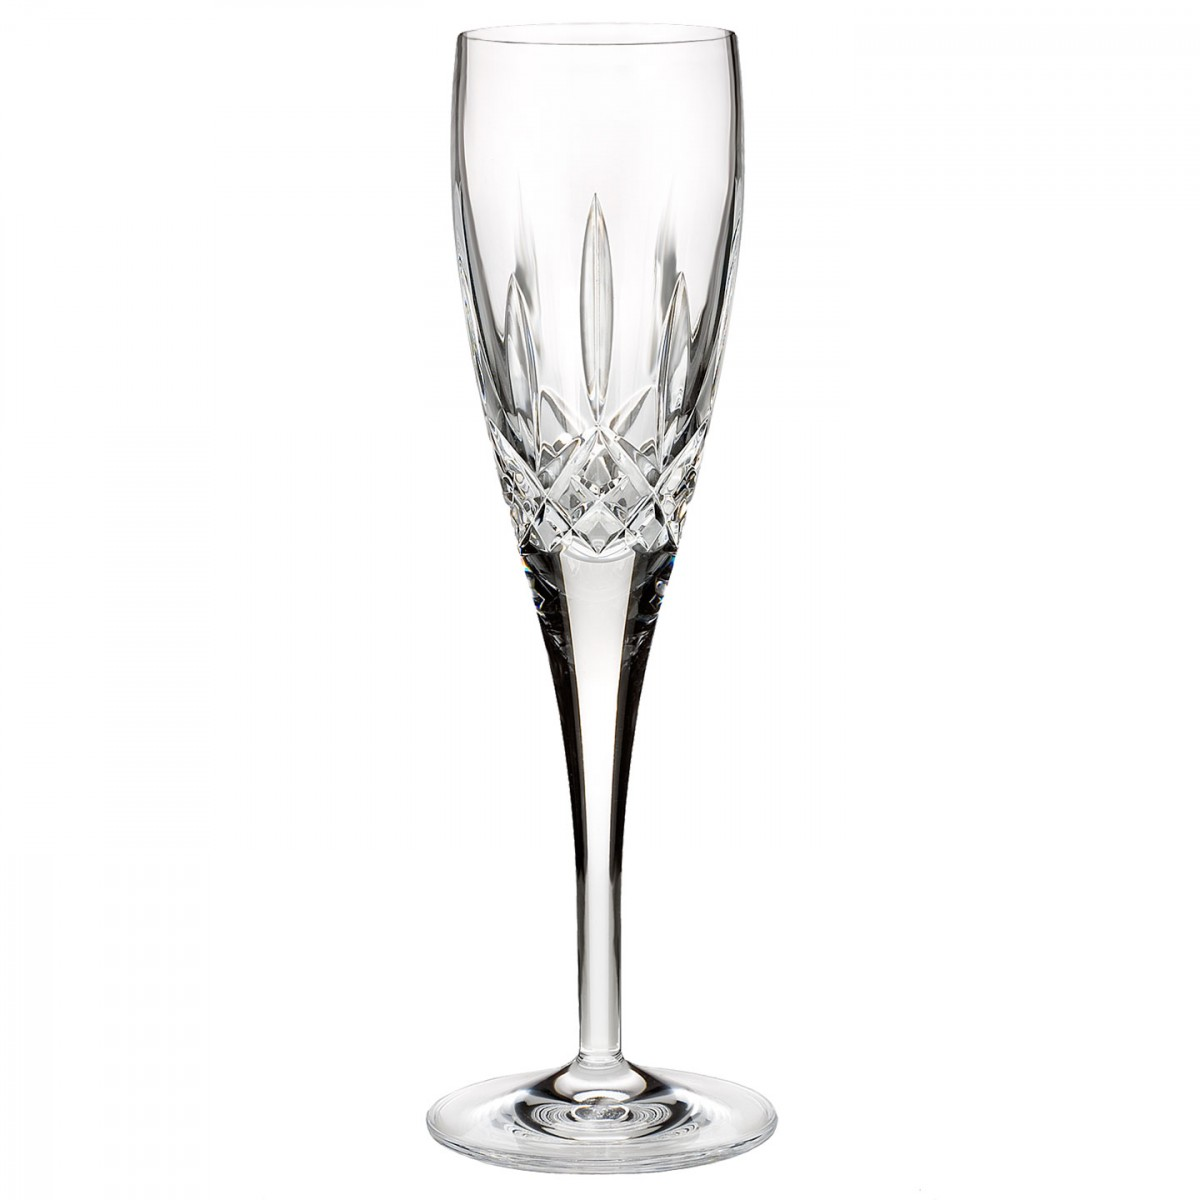 Waterford Crystal, Lismore Nouveau Crystal Flute, Single